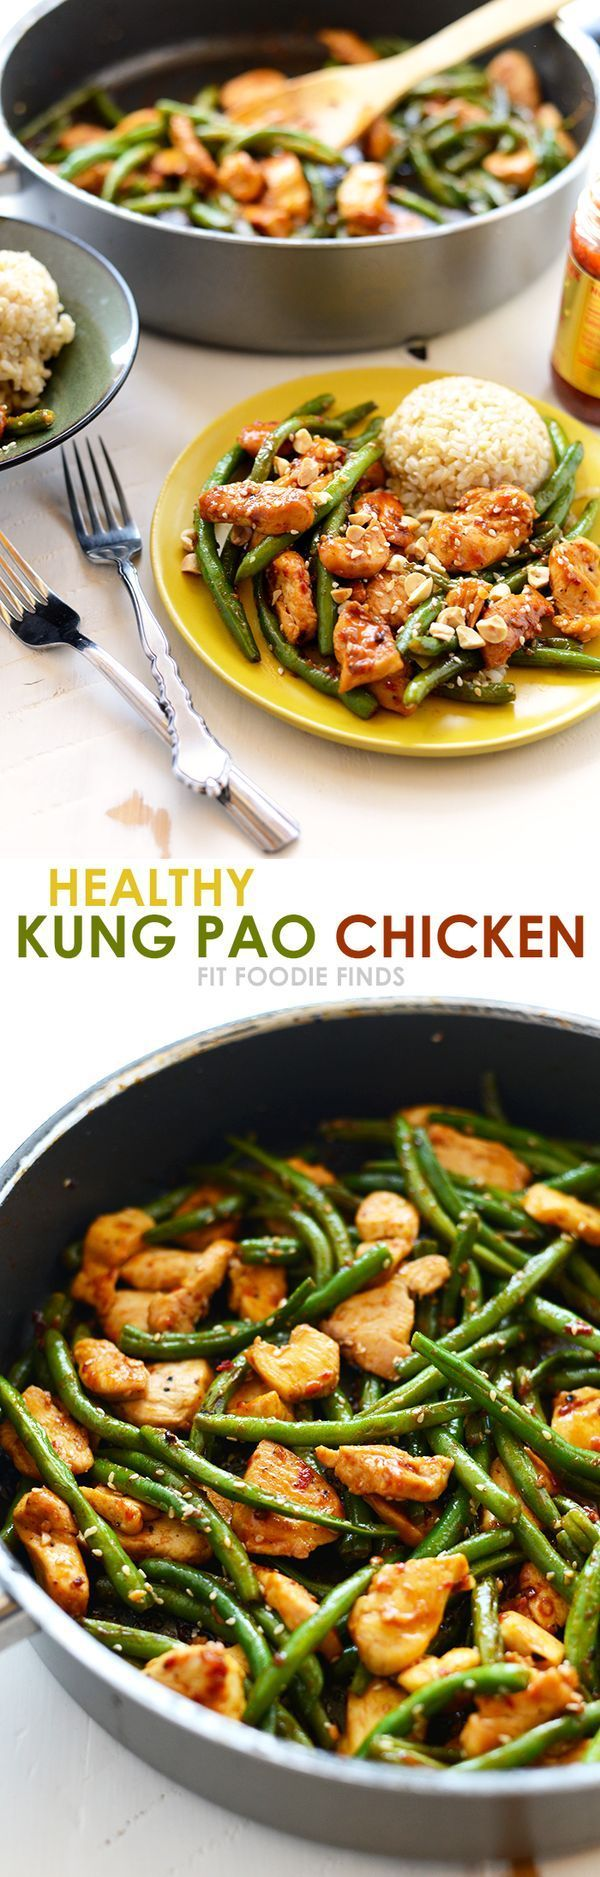 Clean Eating Kung Pao Chicken | Recipe | Health, Protein ...